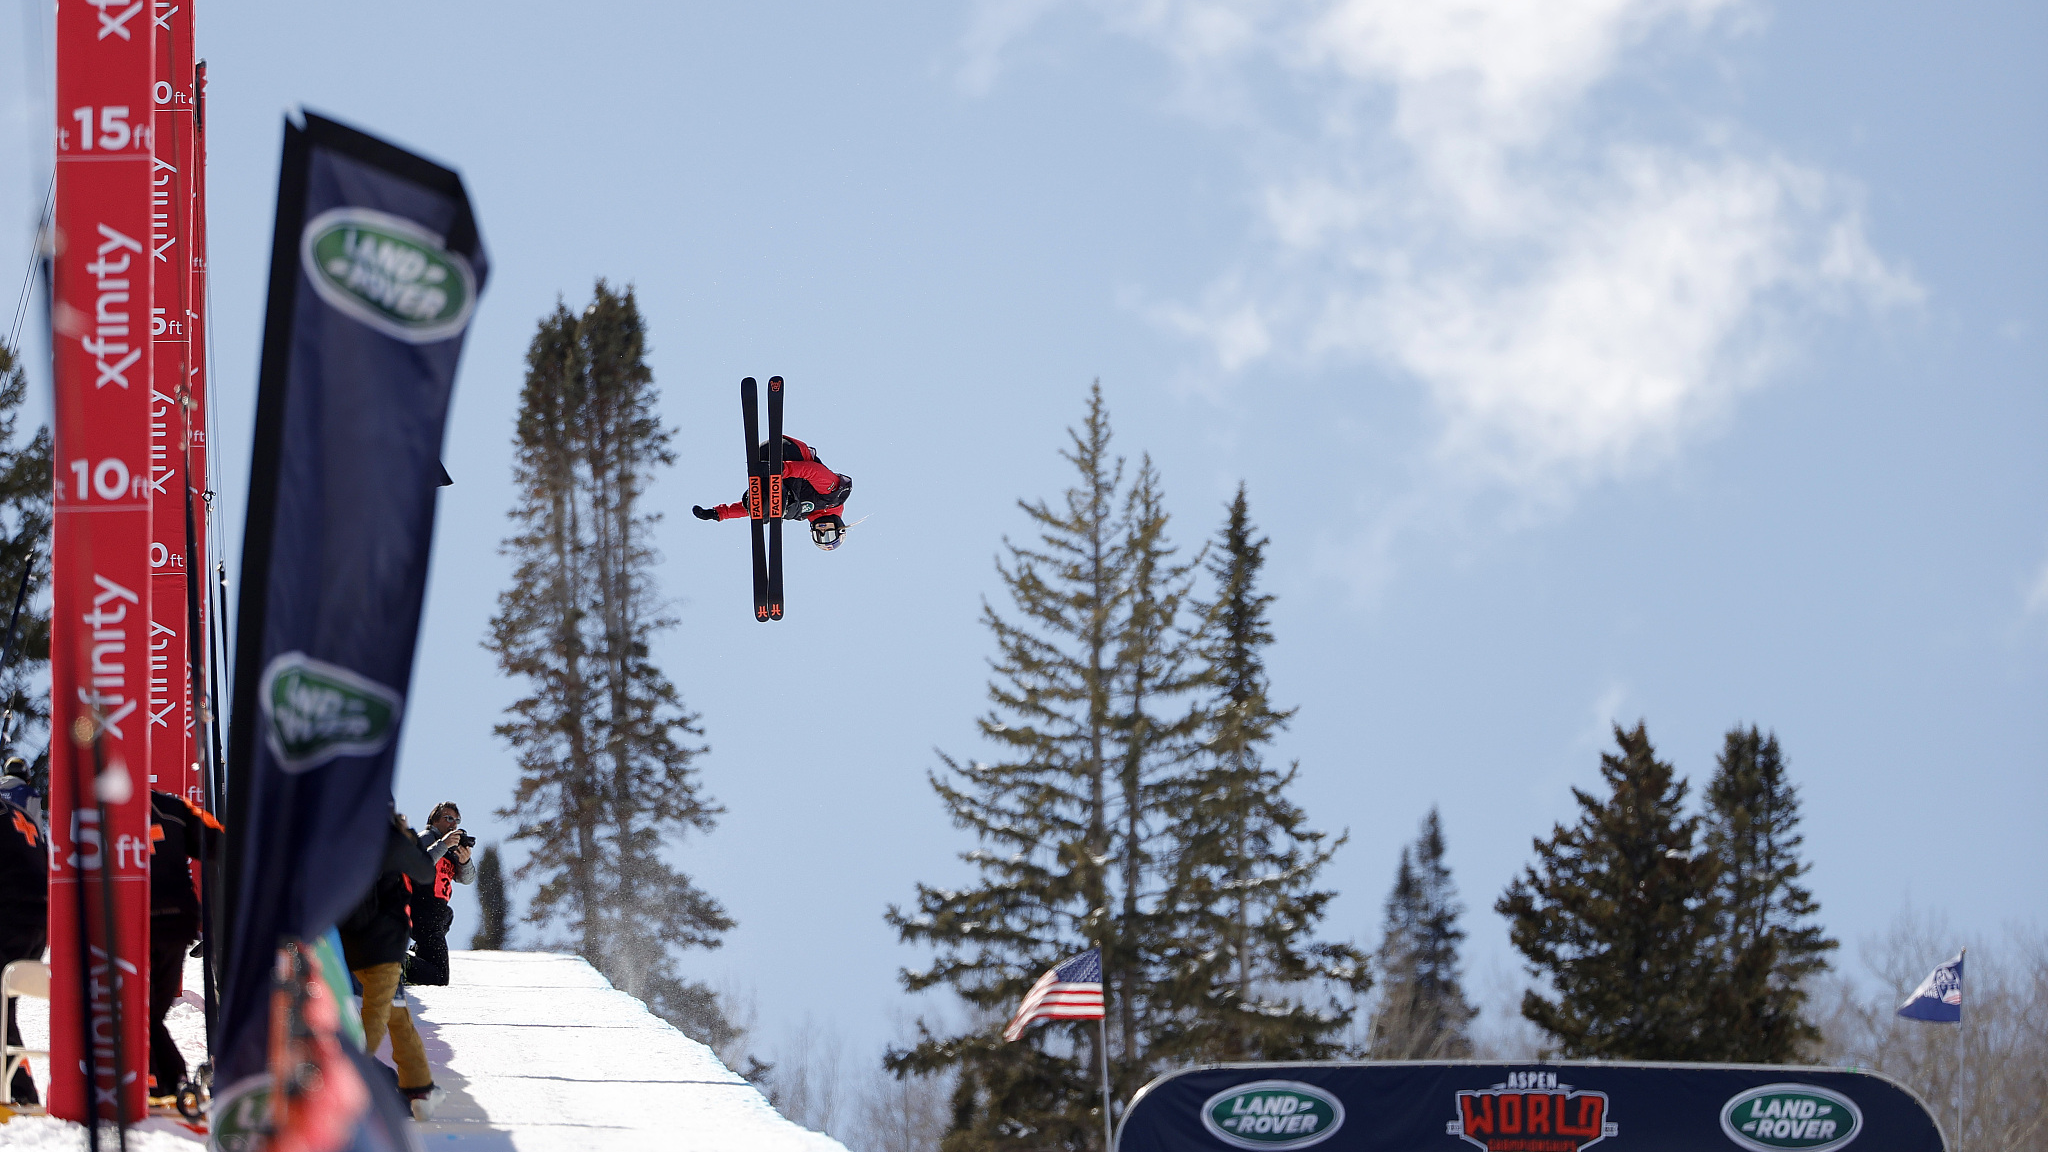 Gu Ailing soars to her second gold at worlds by capturing freeski slopestyle title